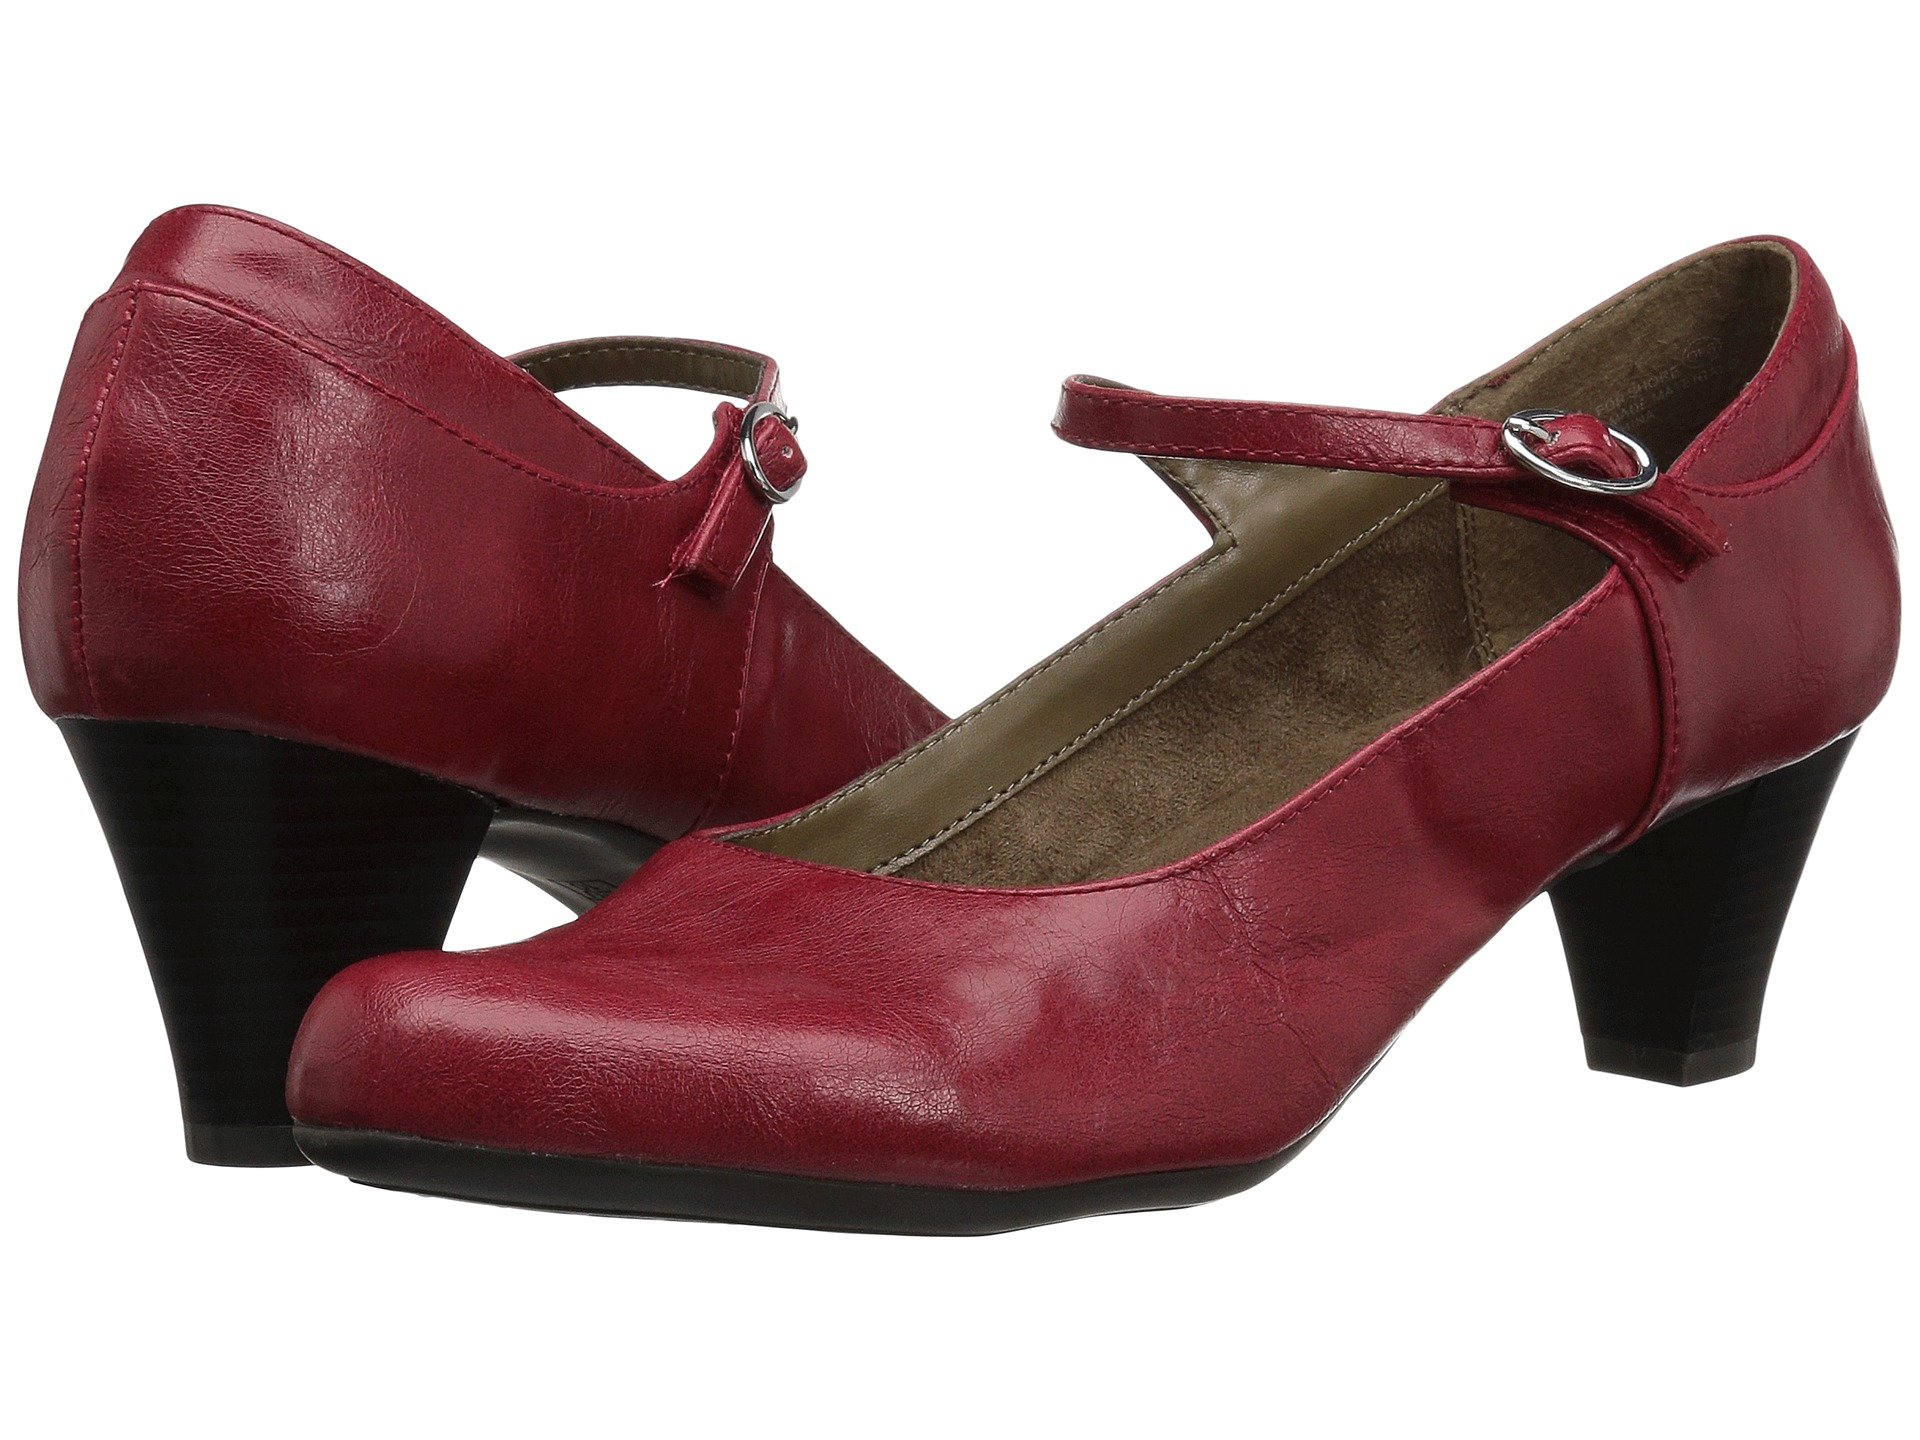 A2 by Aerosoles For Shore at 6pm.com